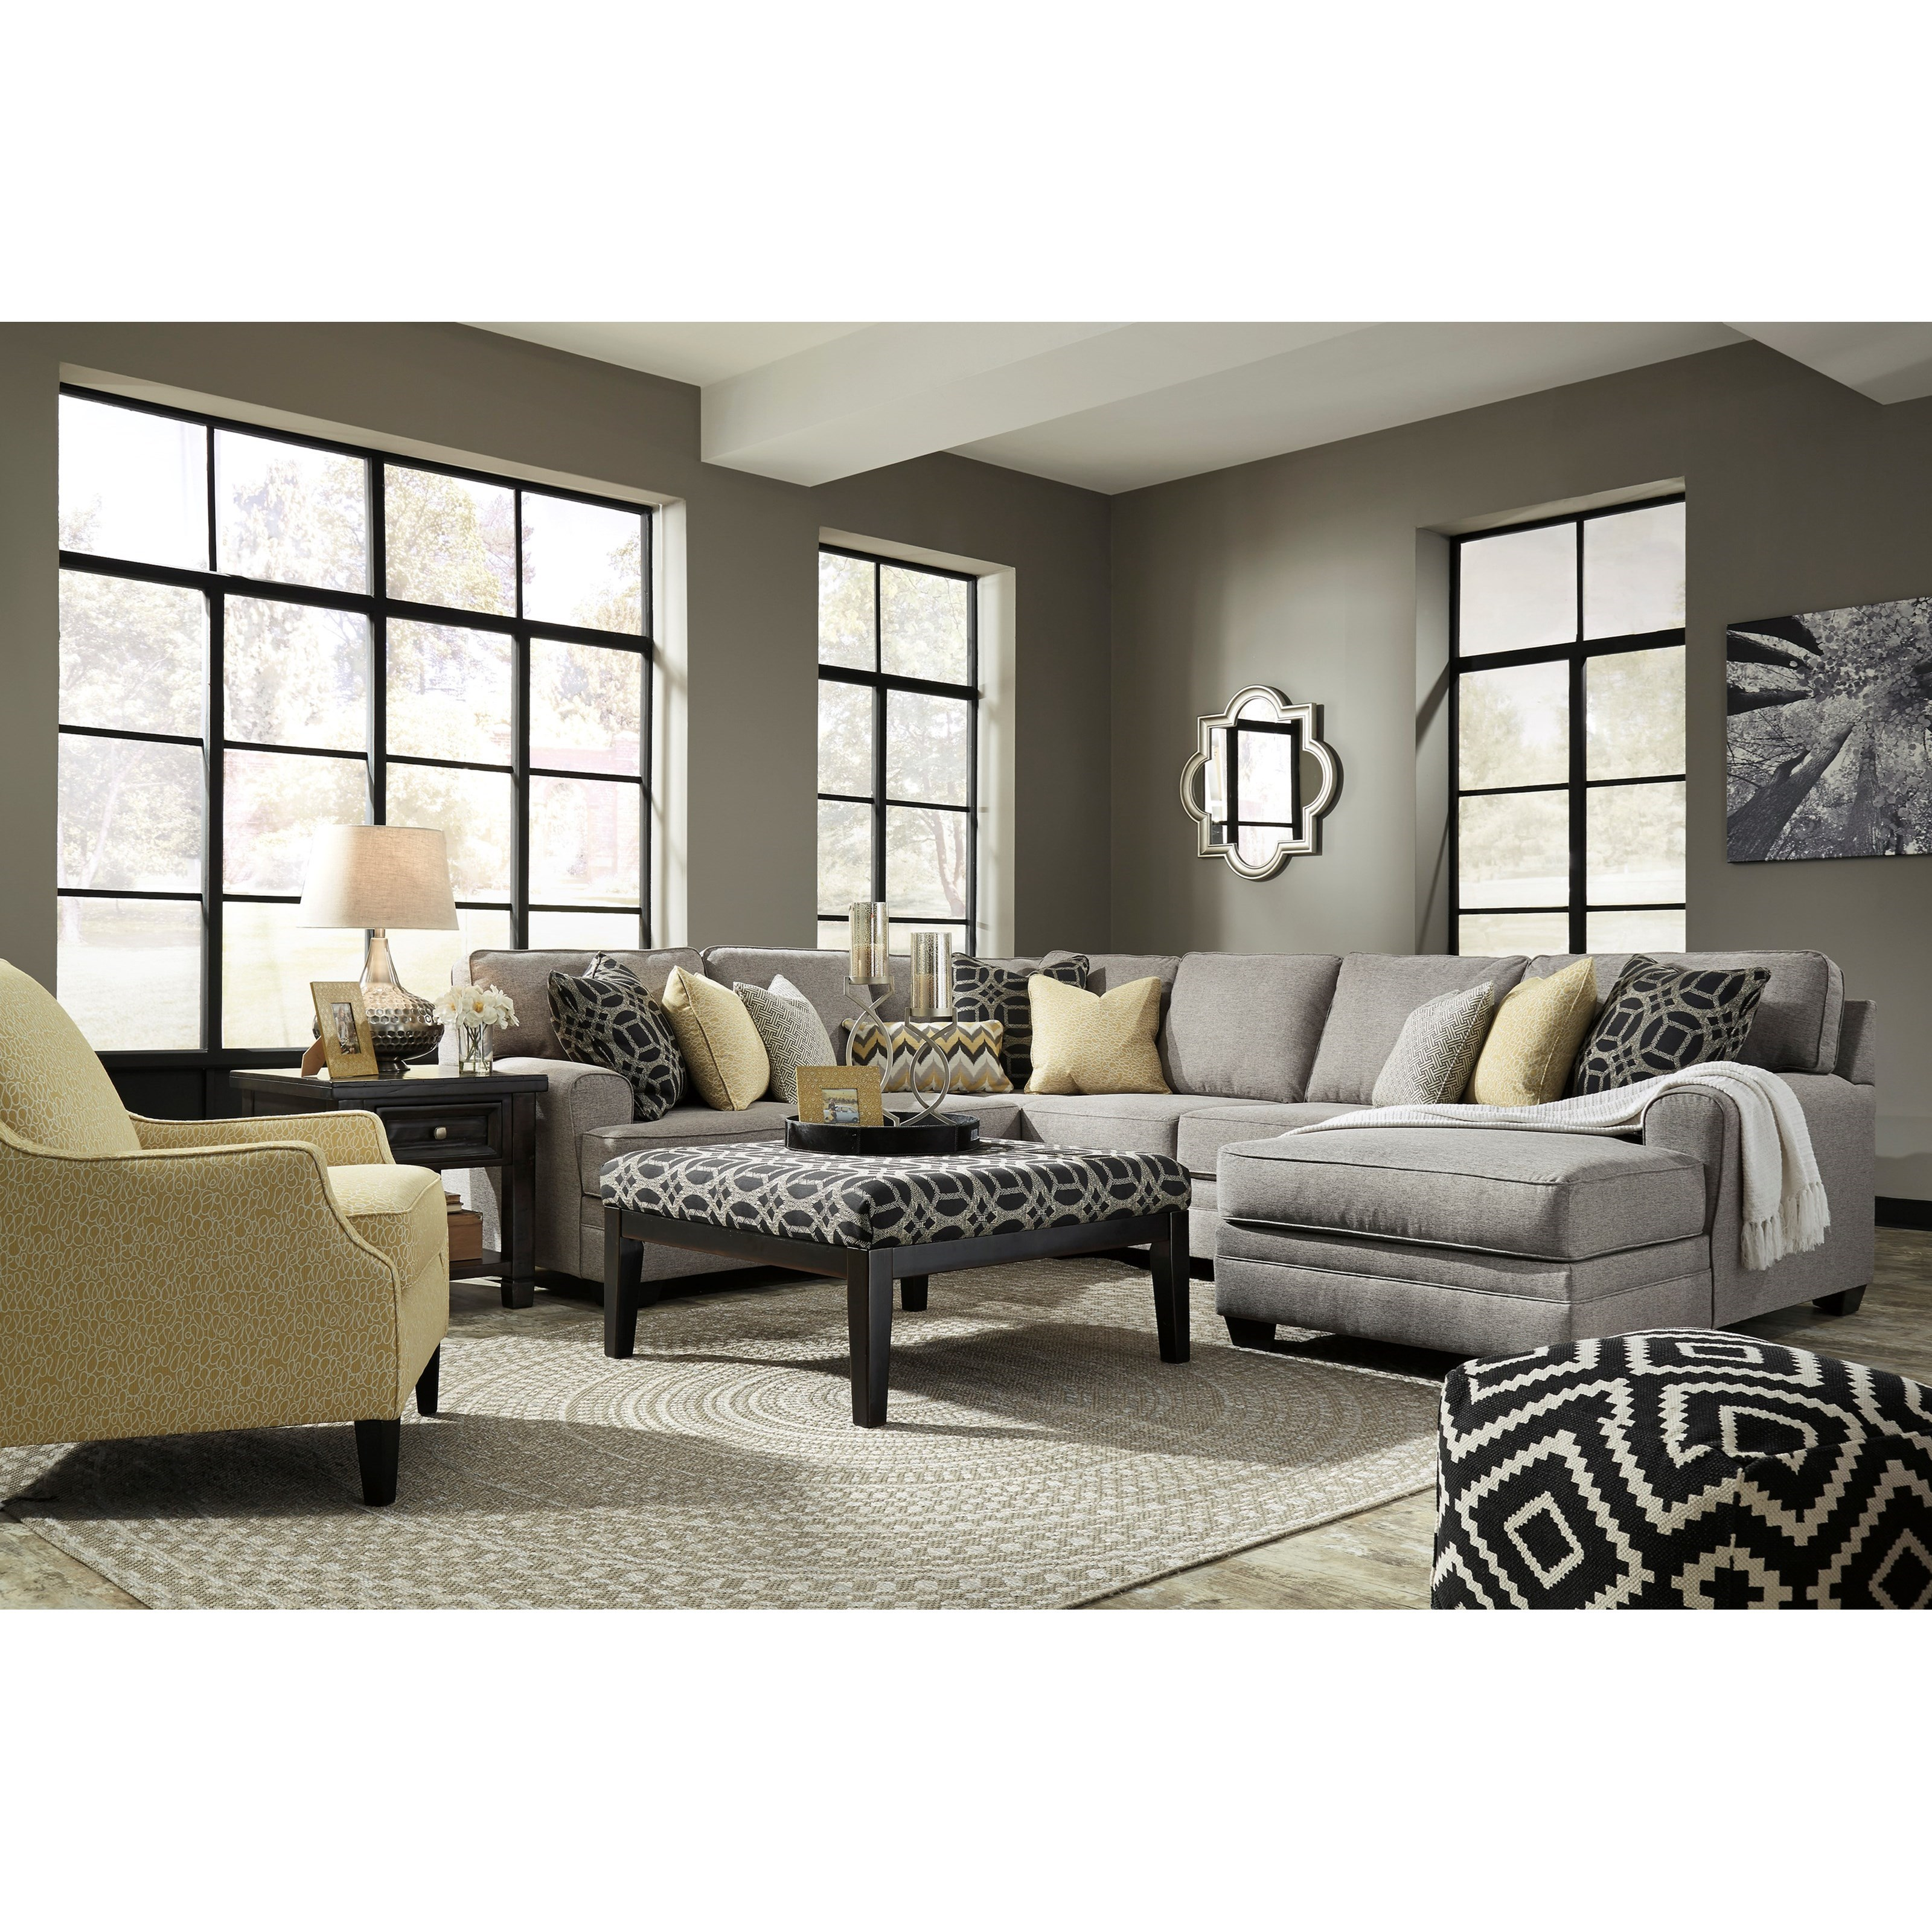 Benchcraft Cresson Stationary Living Room Group - Item Number: 54907 Living Room Group 4